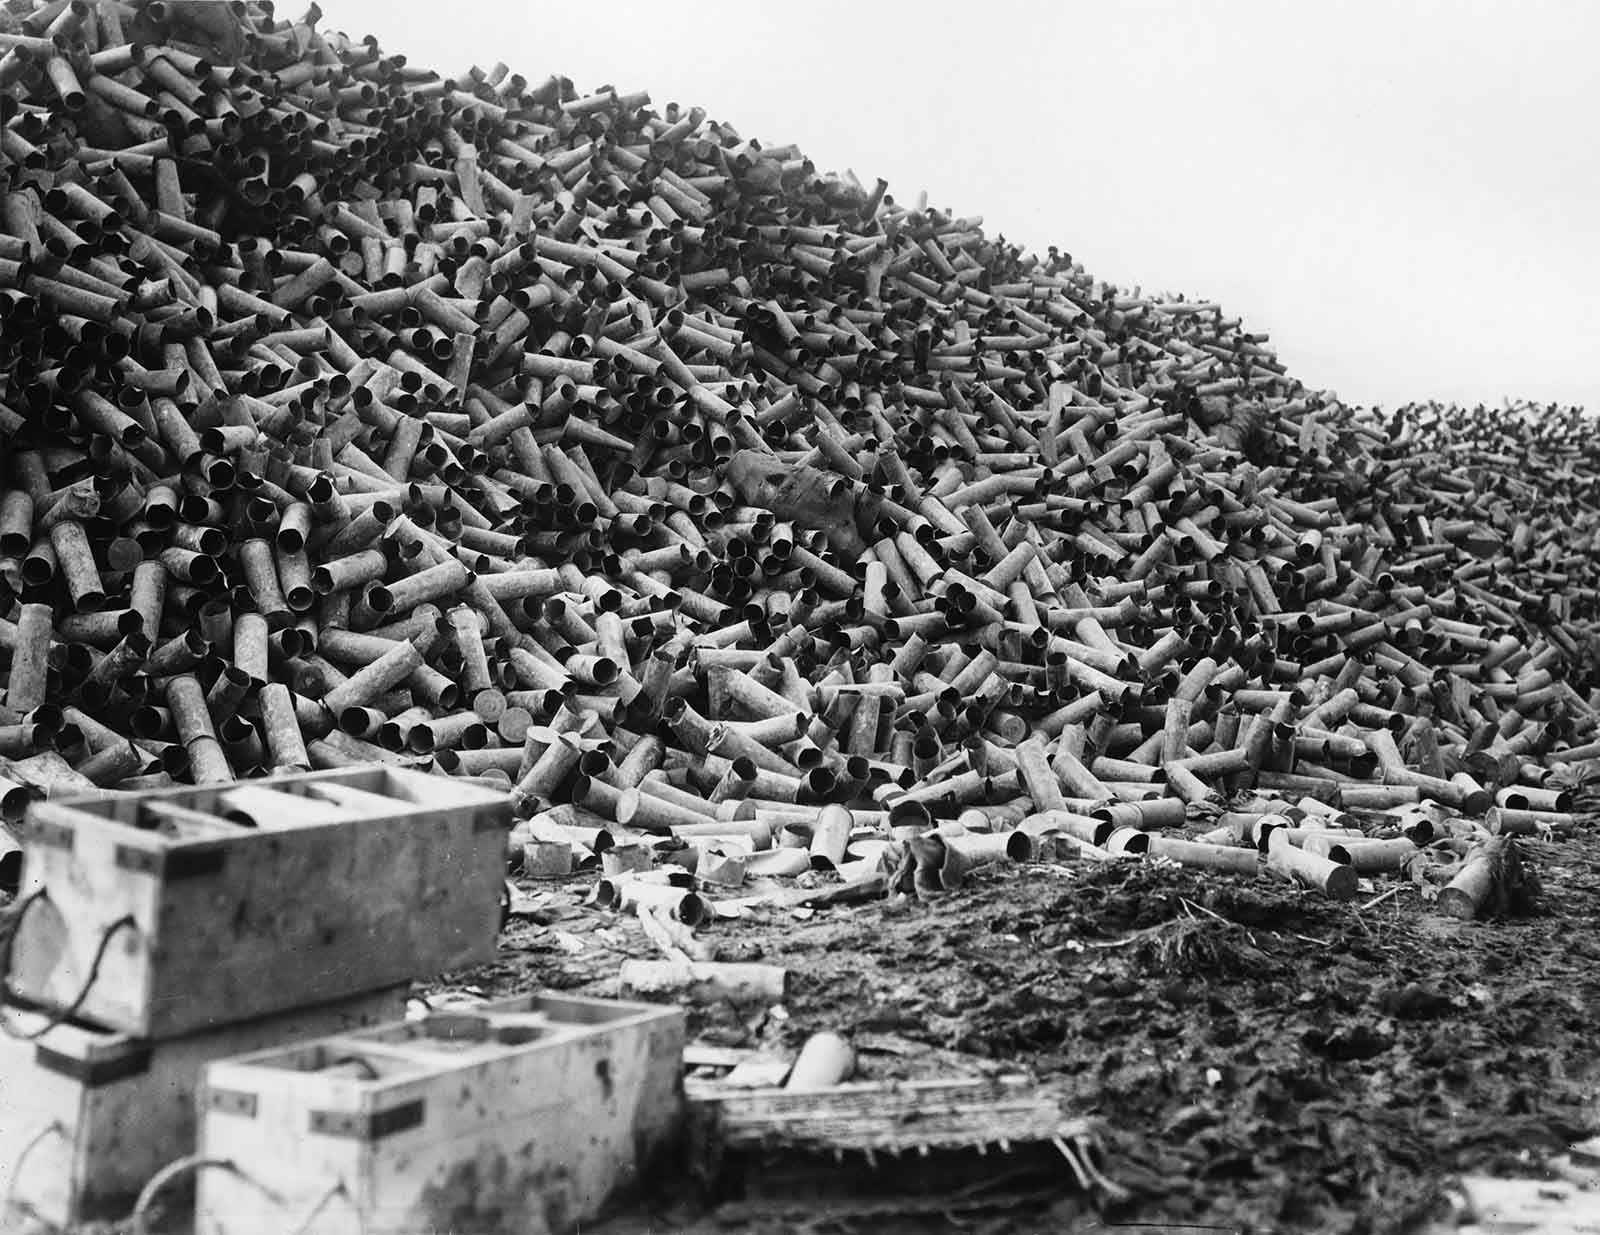 In the week leading up to the battle, over 1.5 million shells were fired.